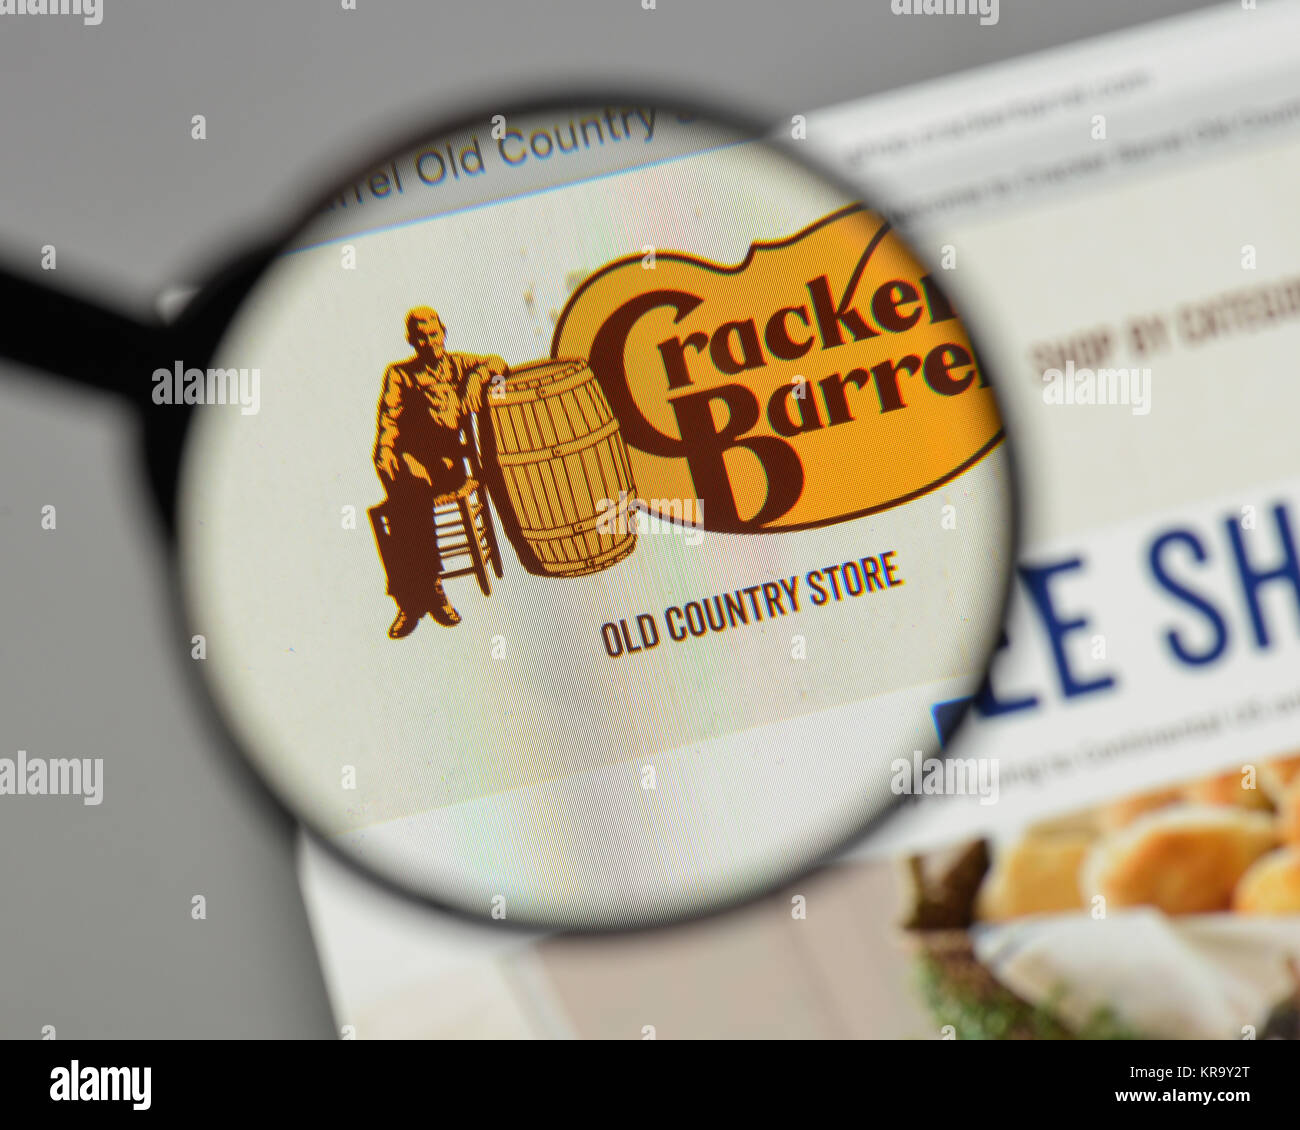 Cracker Barrel Old Country Store Stock Photos & Cracker